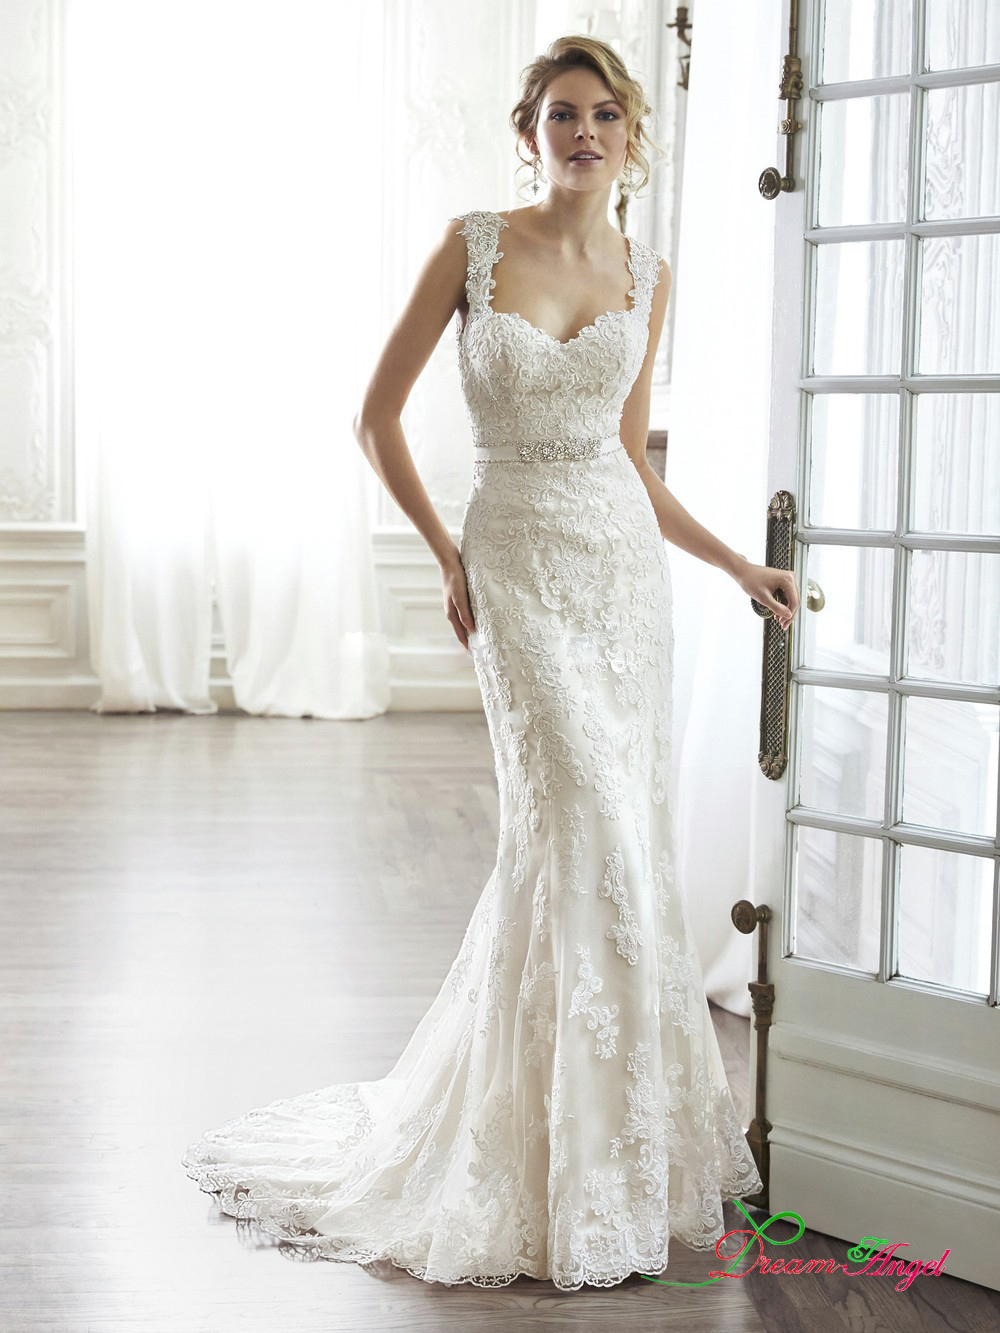 Popular celebrity wedding dresses buy cheap celebrity for Celebrity wedding guest dresses